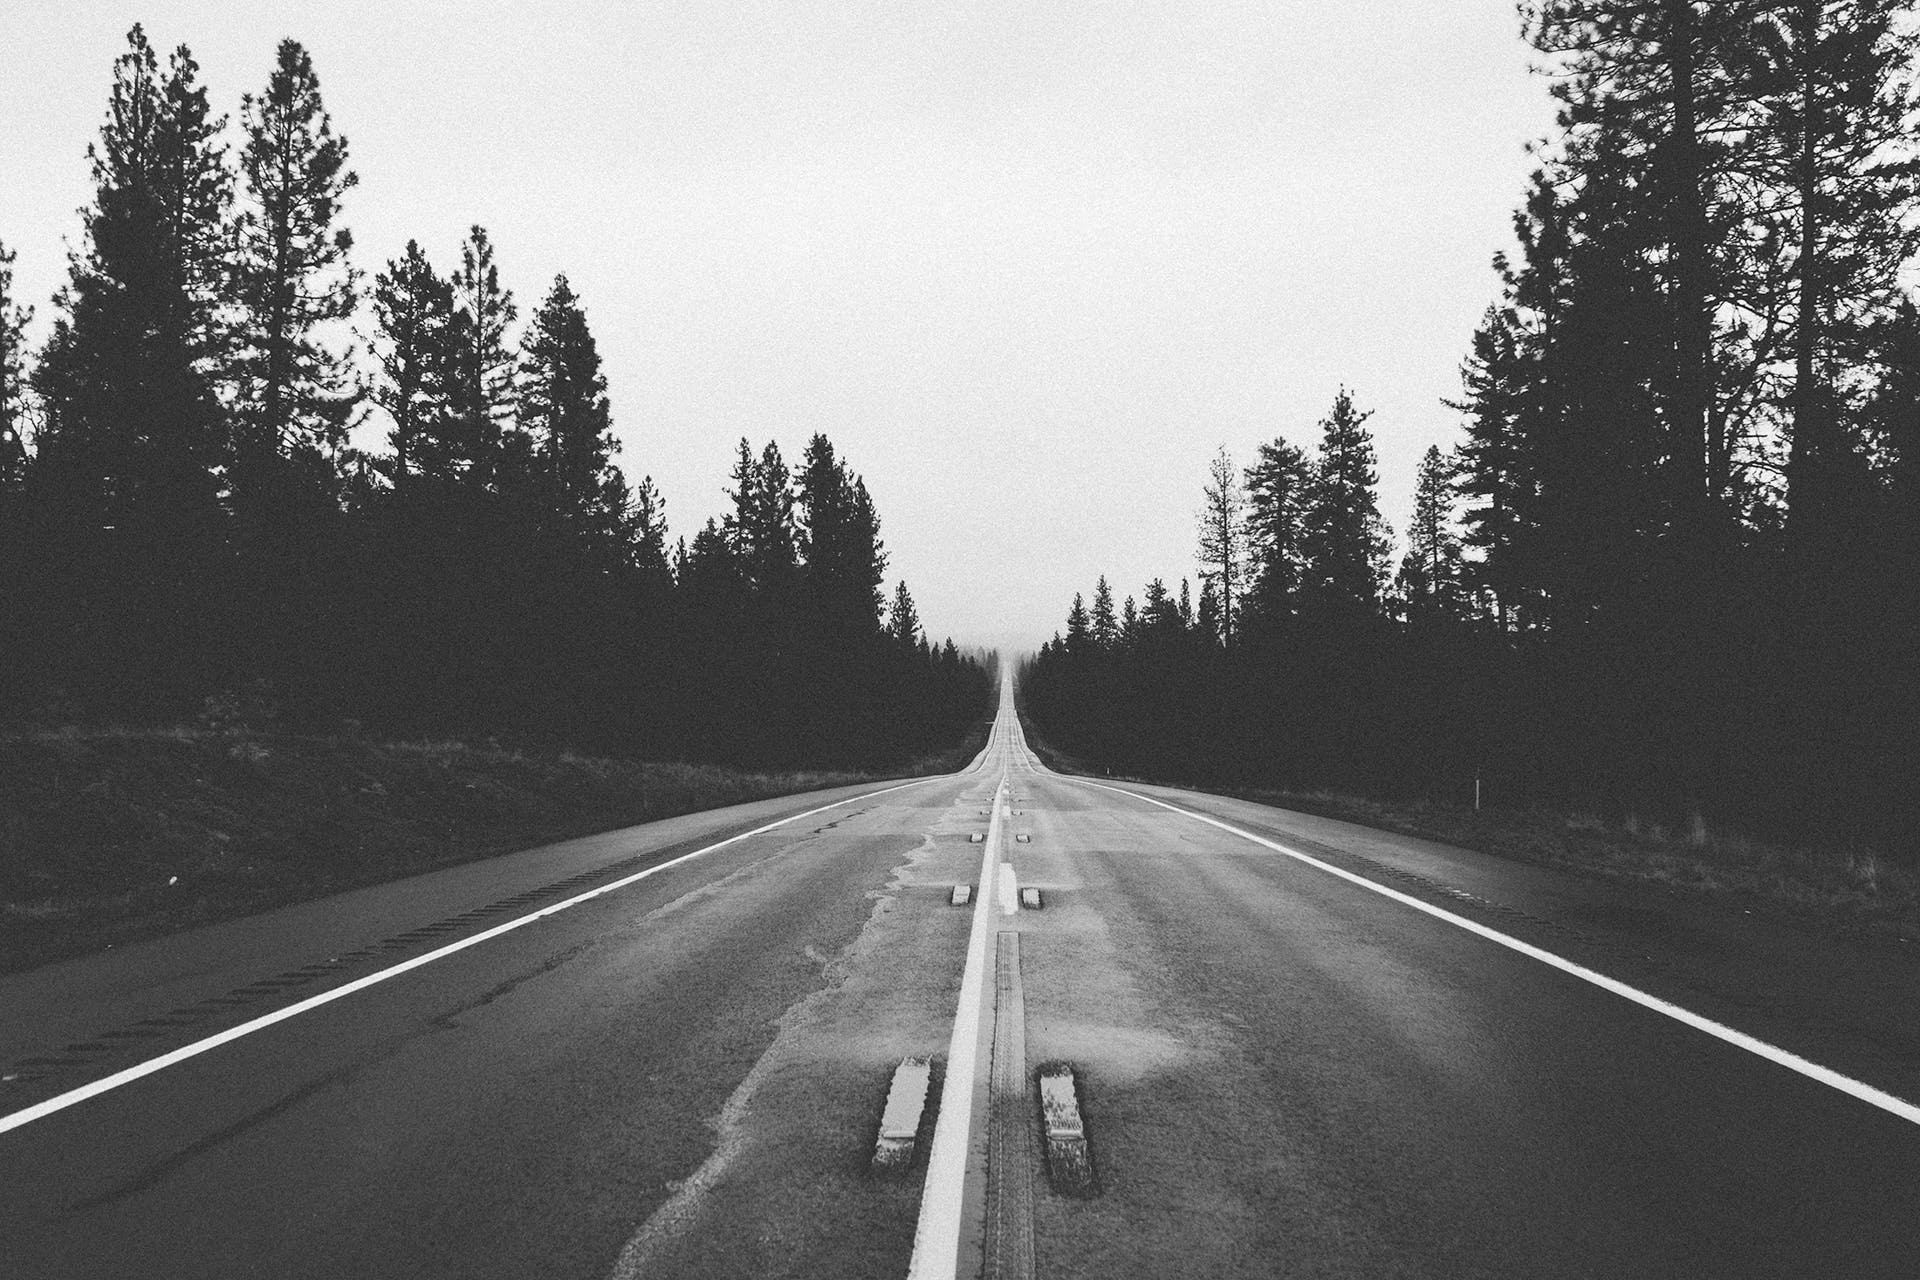 Grayscale Photography of Road Between Trees